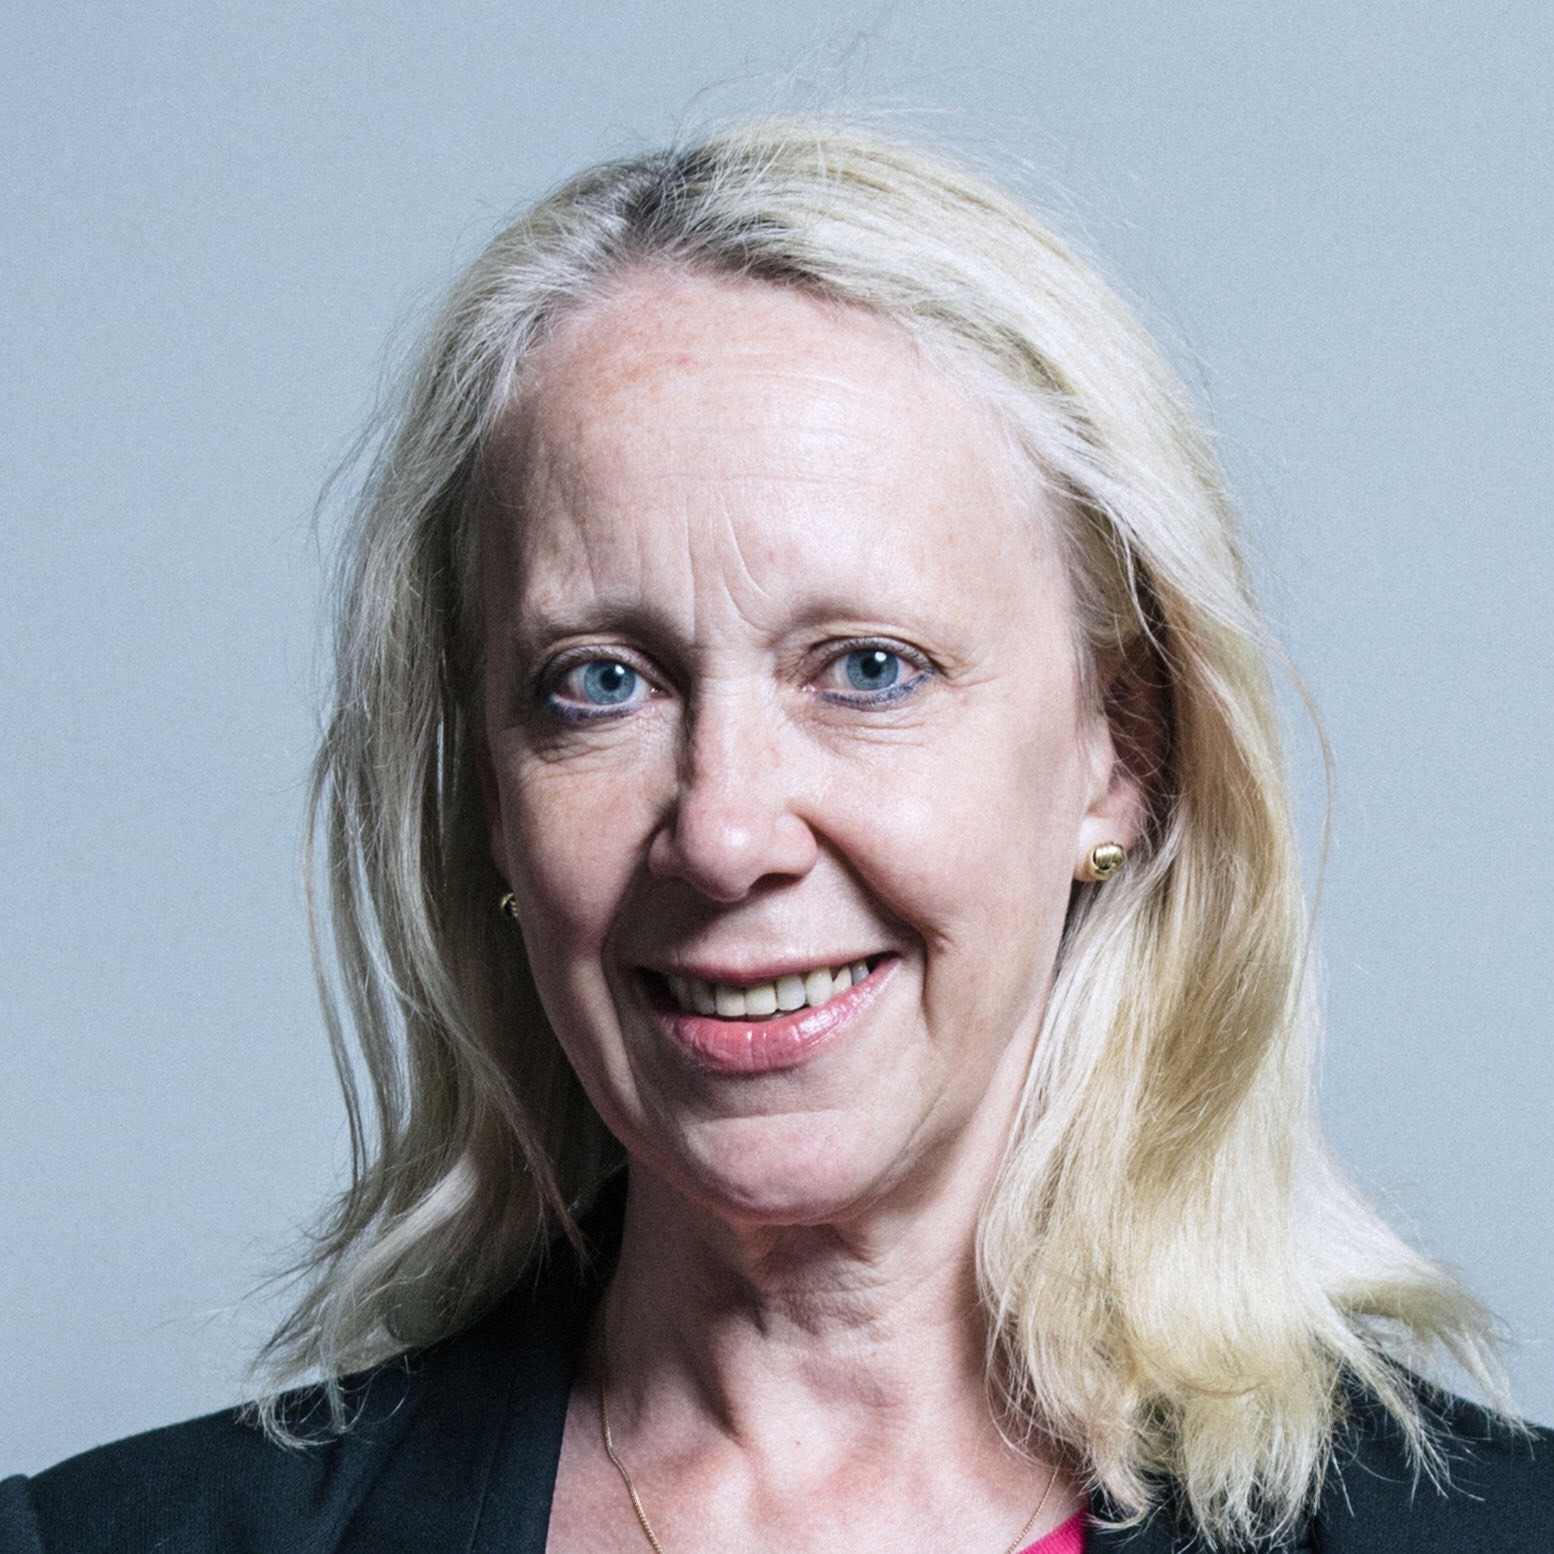 Liz_McInnes_MP_portrait_2.jpg